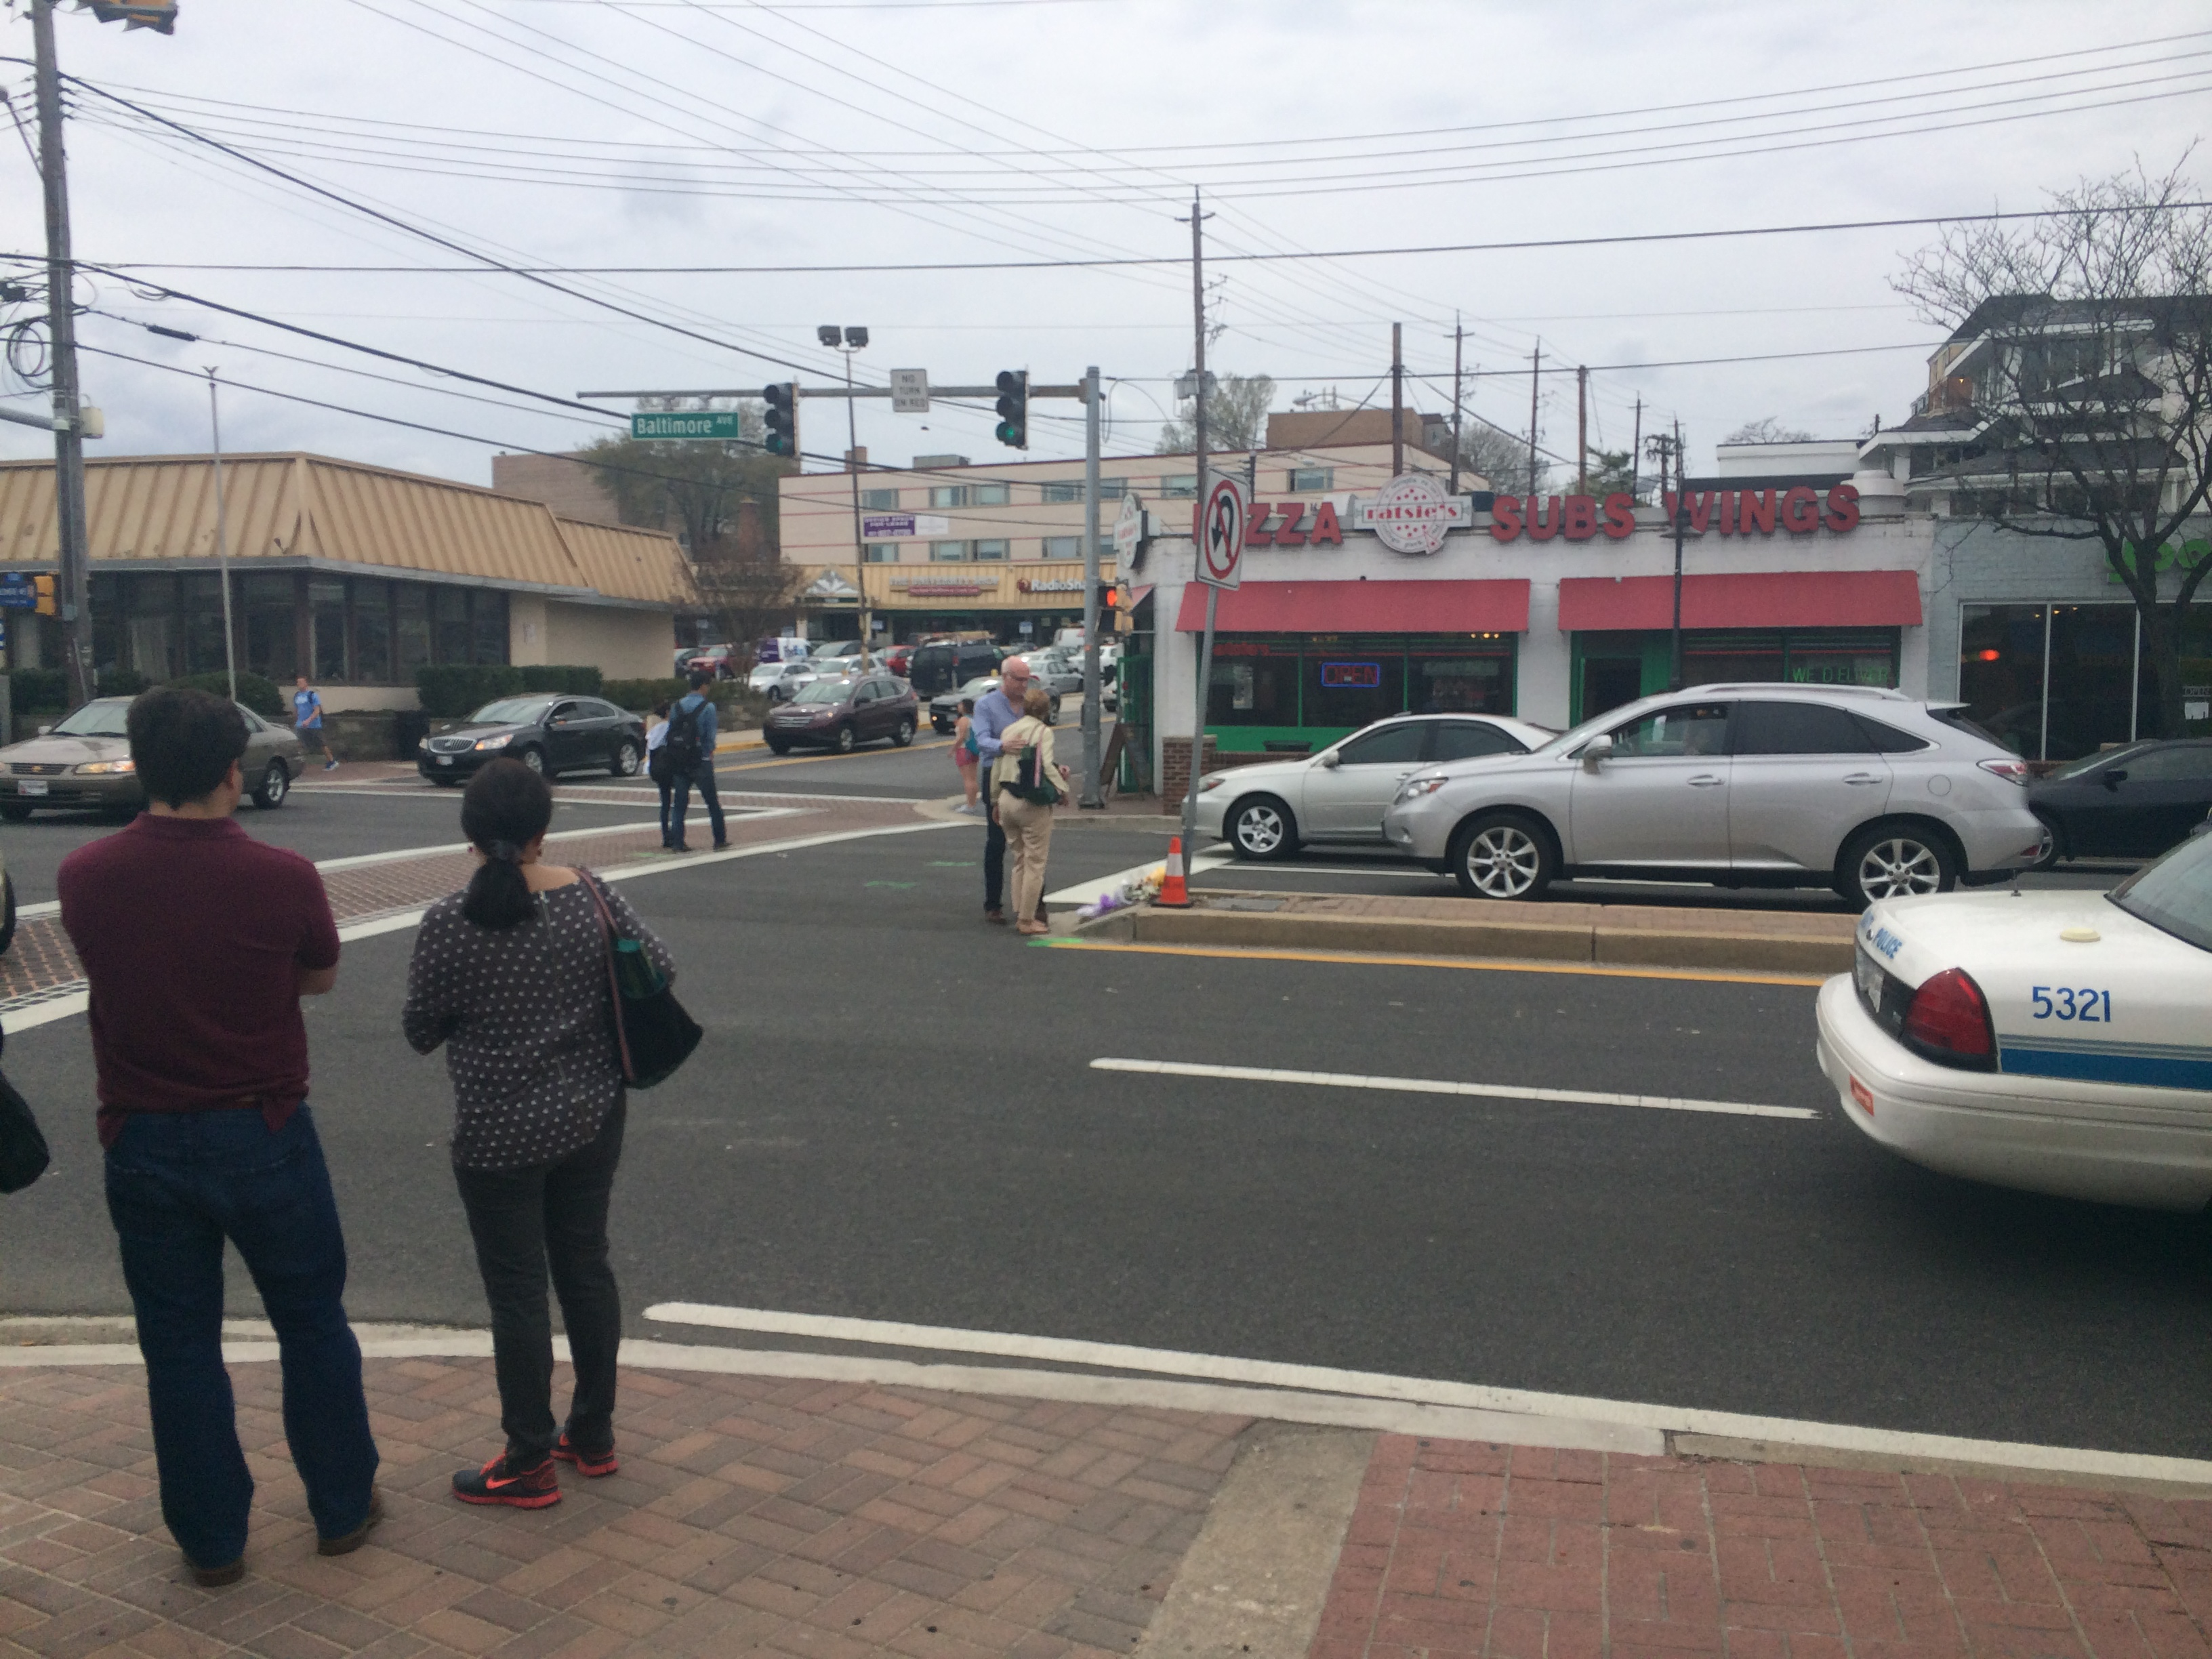 Second pedestrian death at College Park intersection prompts calls for change